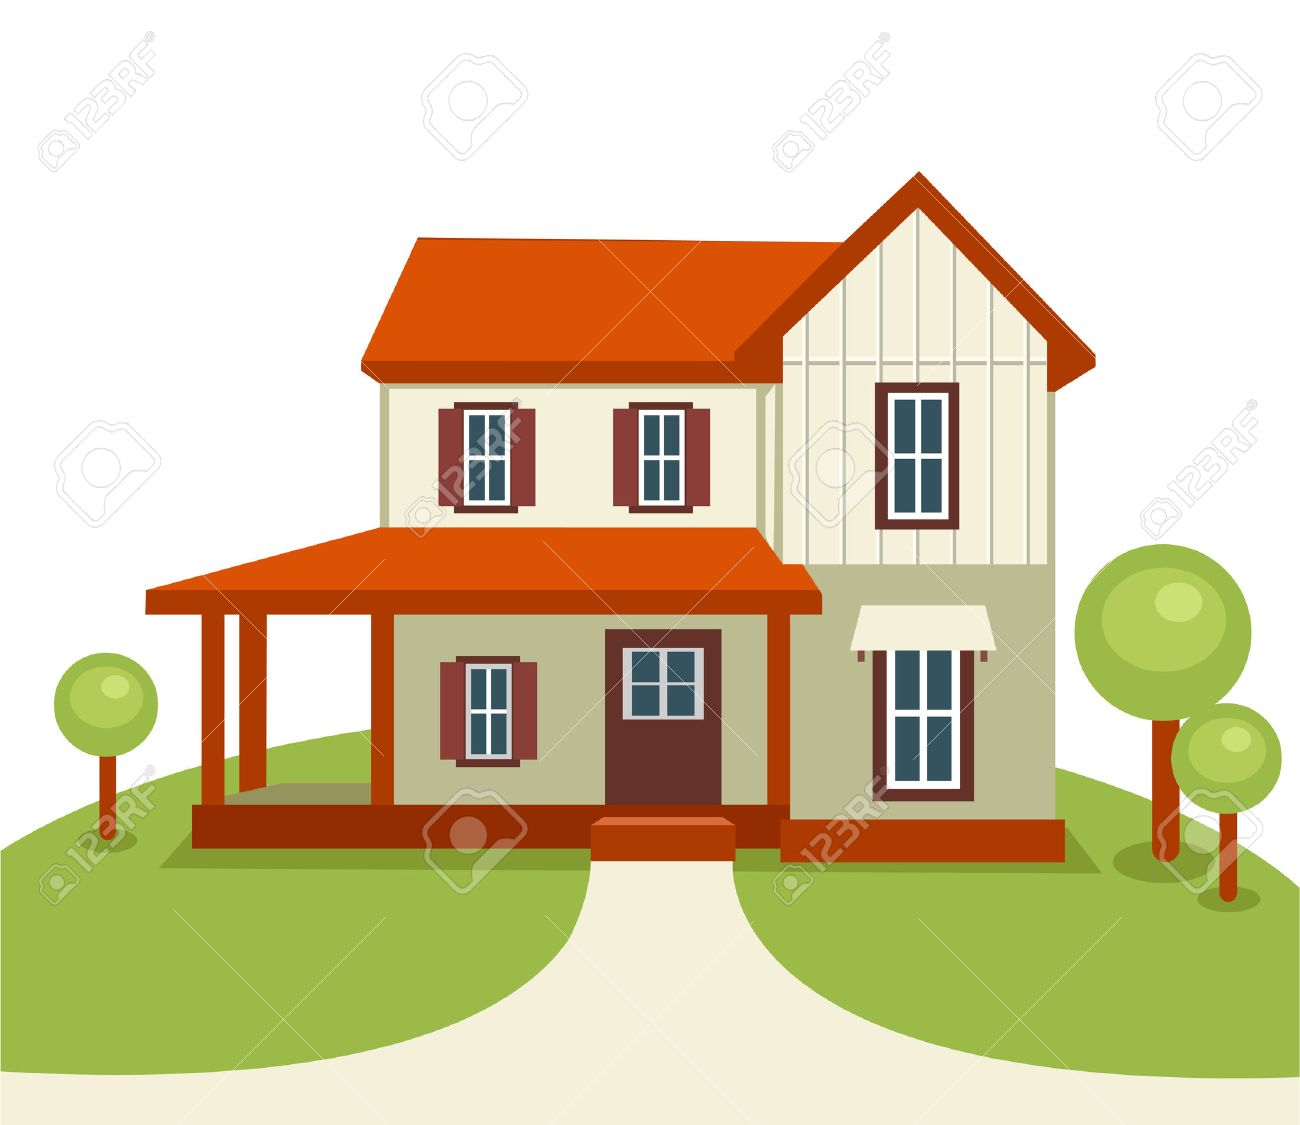 Modern house with trees and grass . Real estate or construction Stock Vector - 7933209